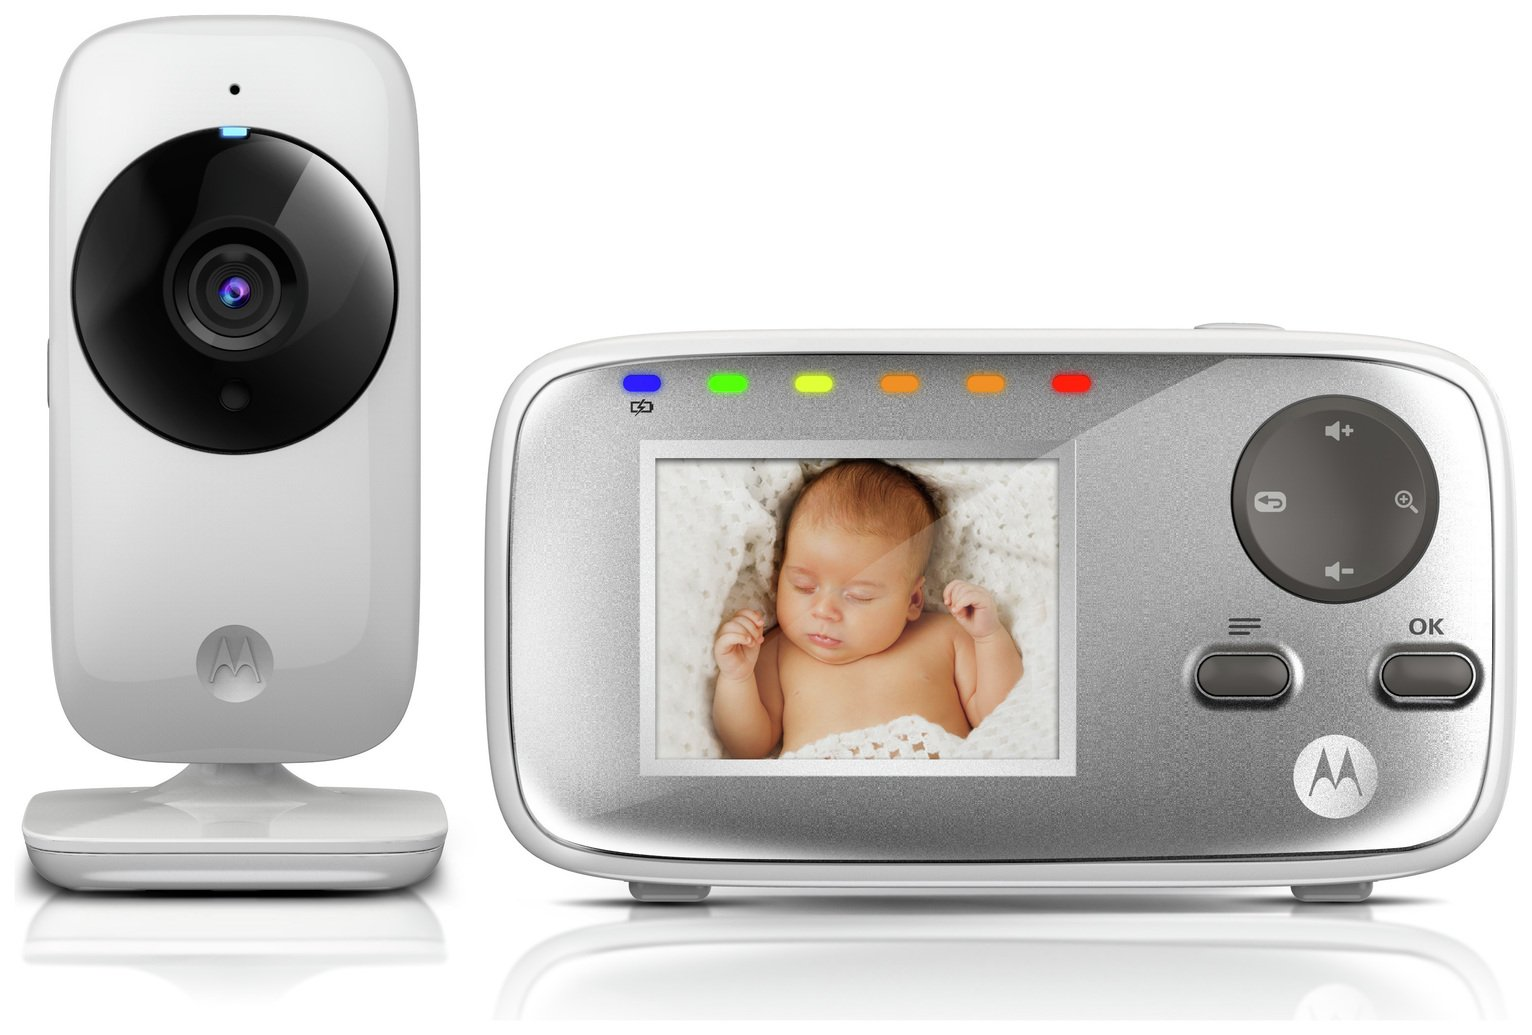 Motorola MBP482 Baby Video Monitor Reviews